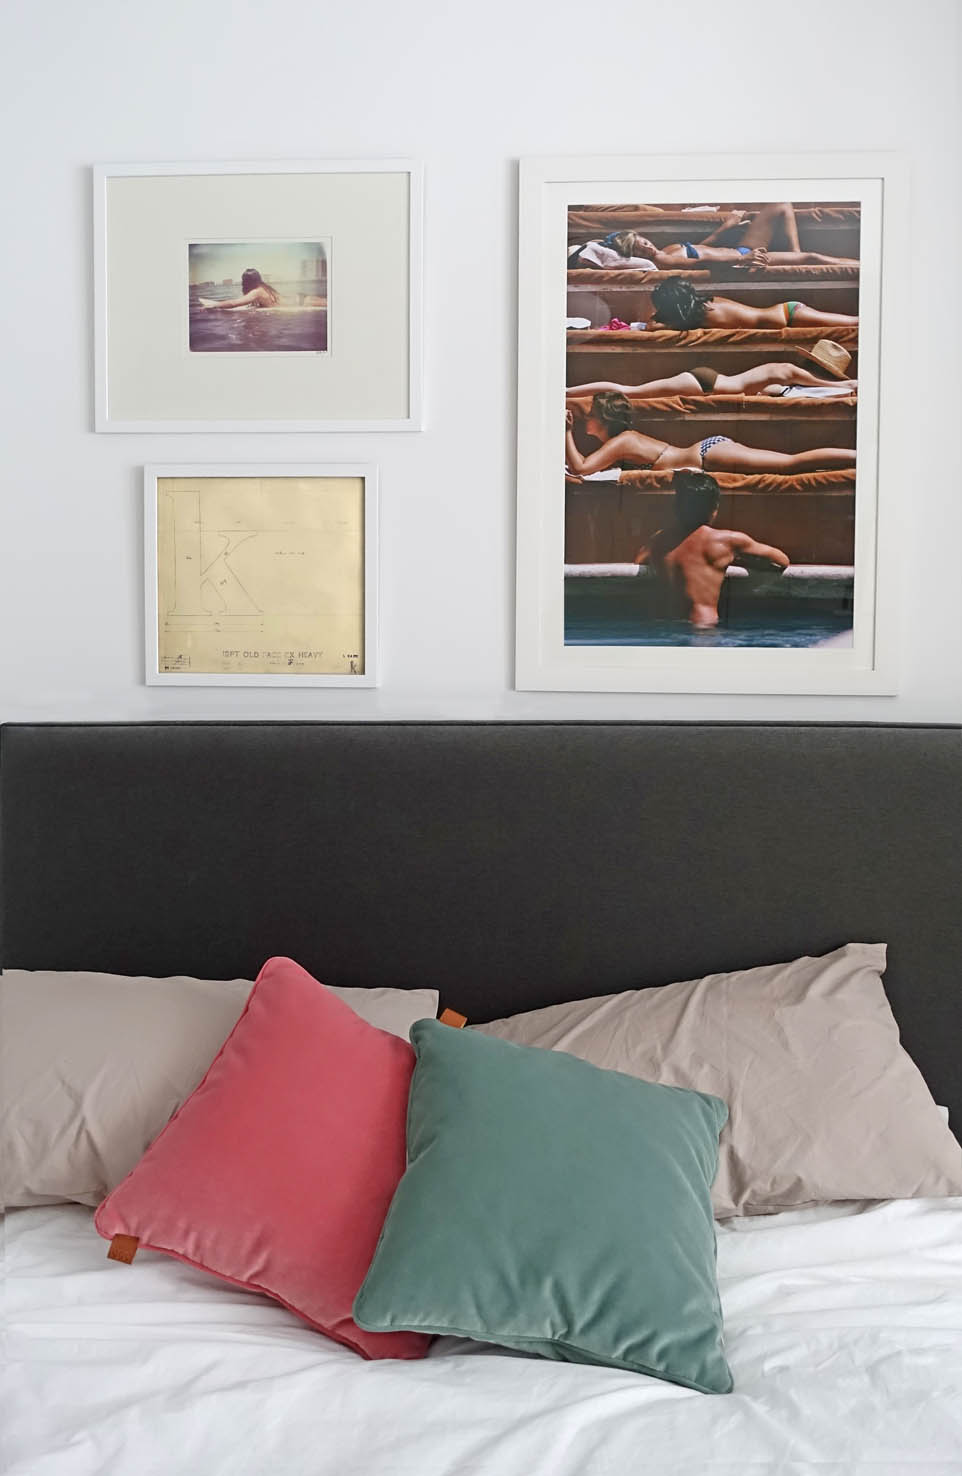 Some more beautifully framed prints hang above the bed.